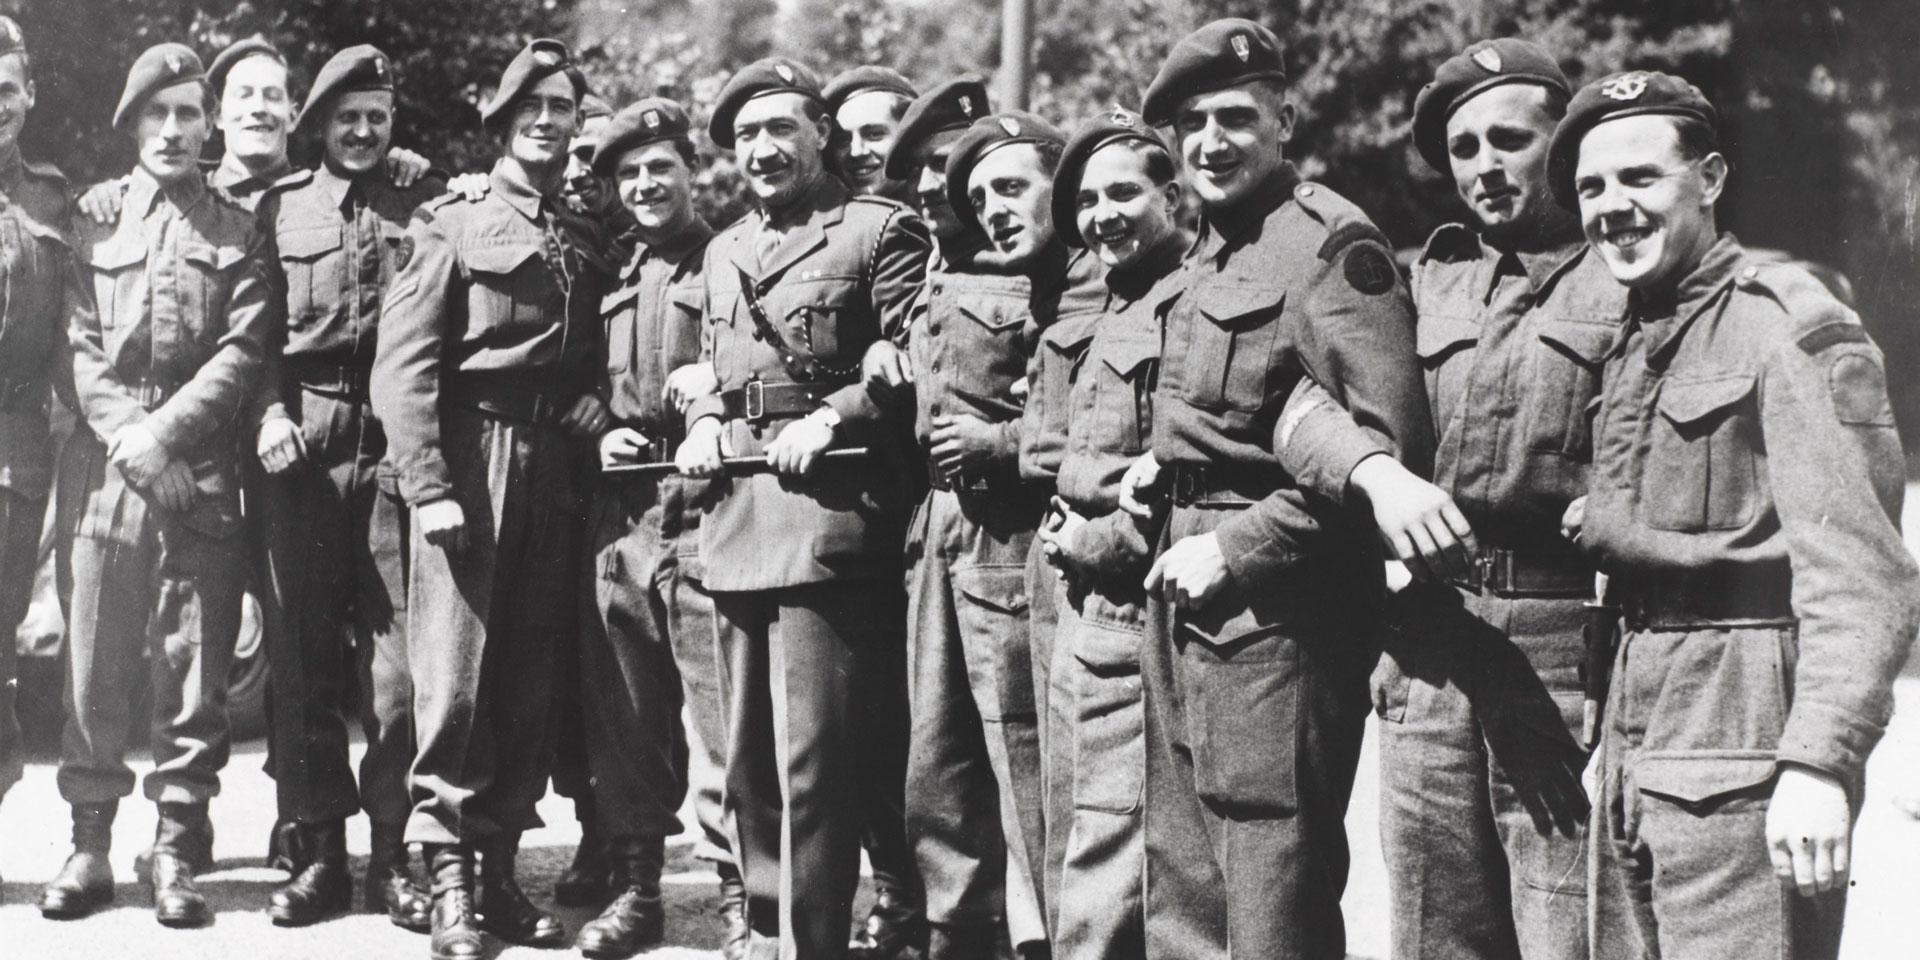 Members of the Special Boat Service at Hillhead, Hampshire, 1943